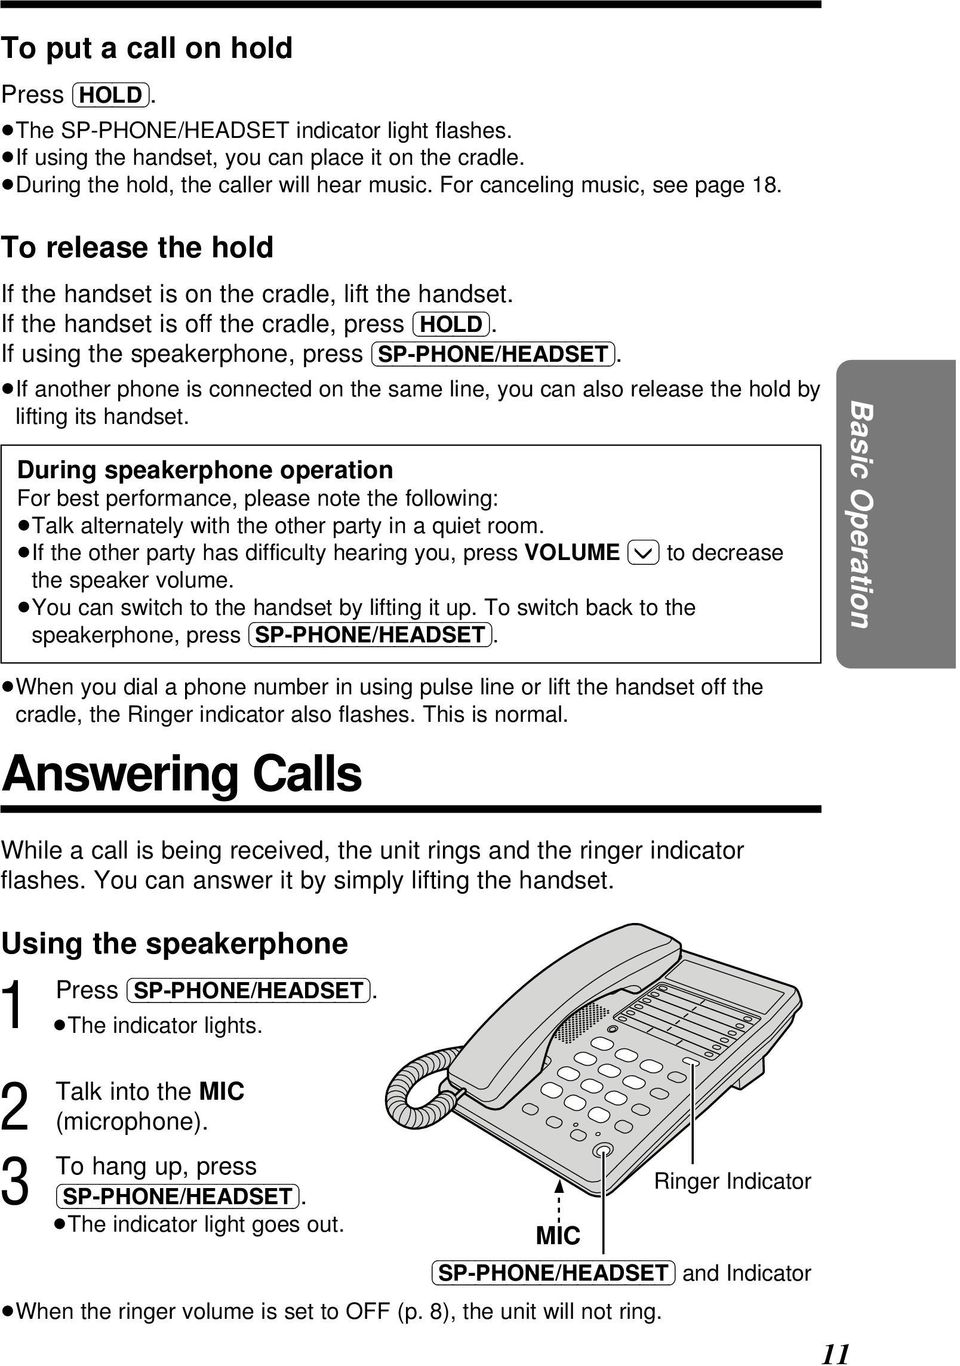 If using the speakerphone, press (SP-PHONE/HEADSET). If another phone is connected on the same line, you can also release the hold by lifting its handset.